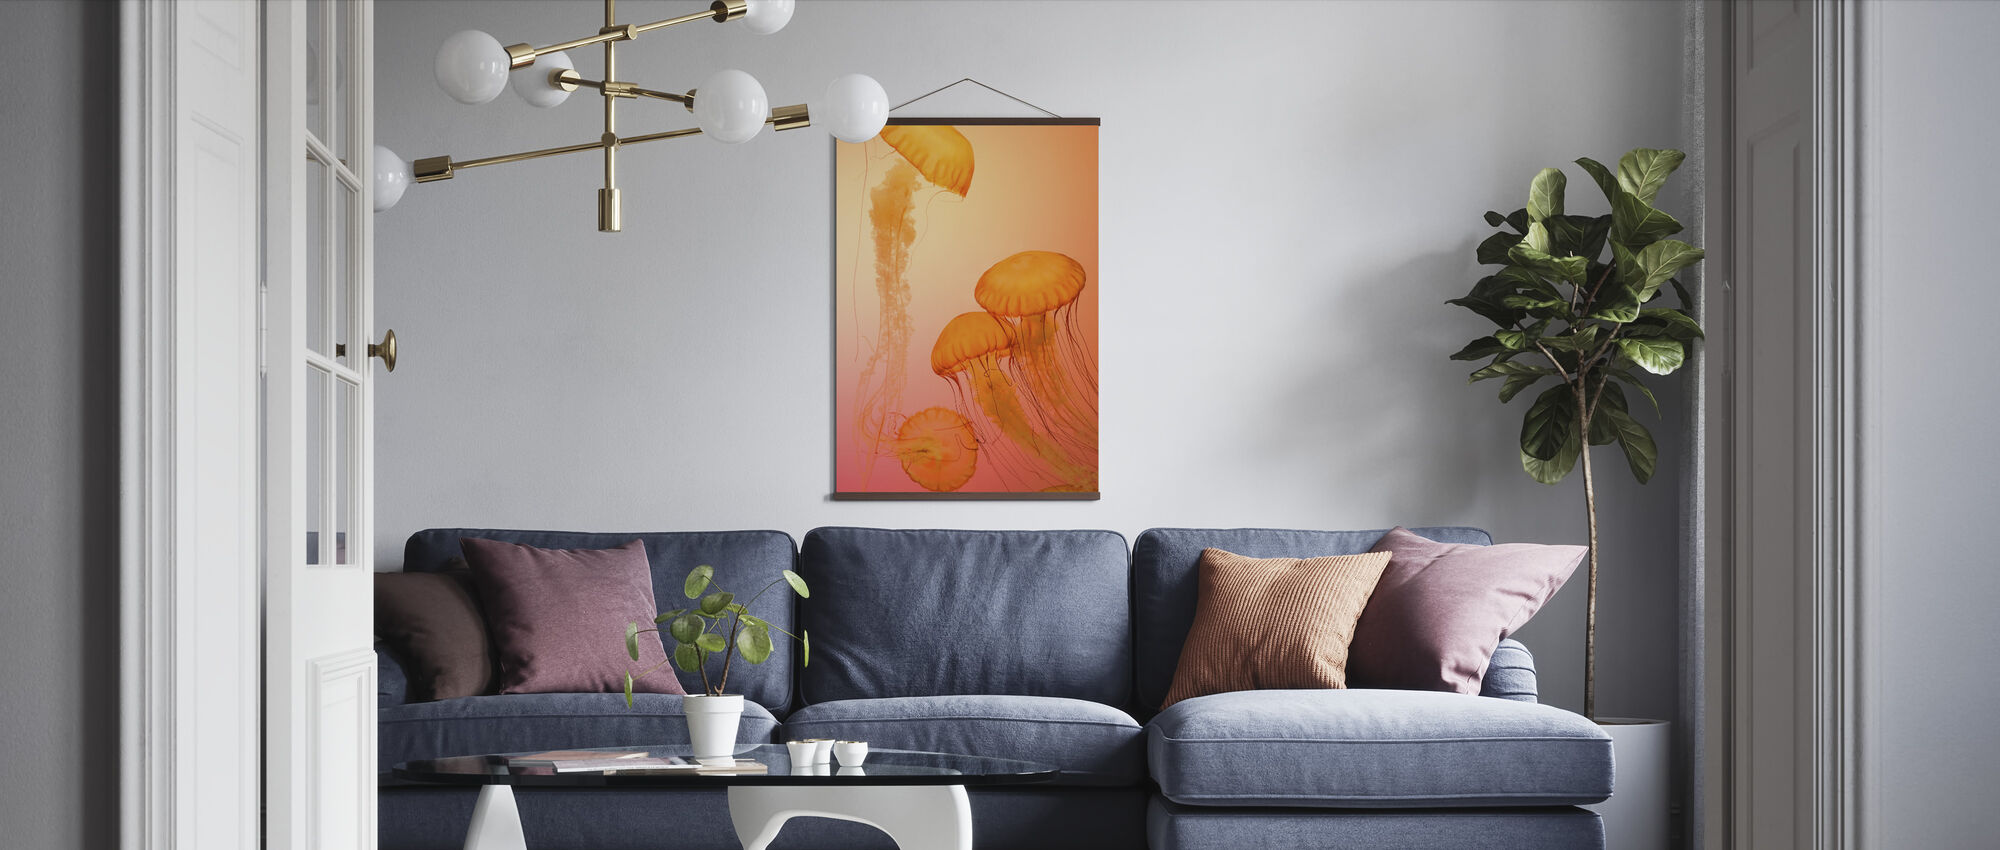 Jellyfish - Poster - Living Room